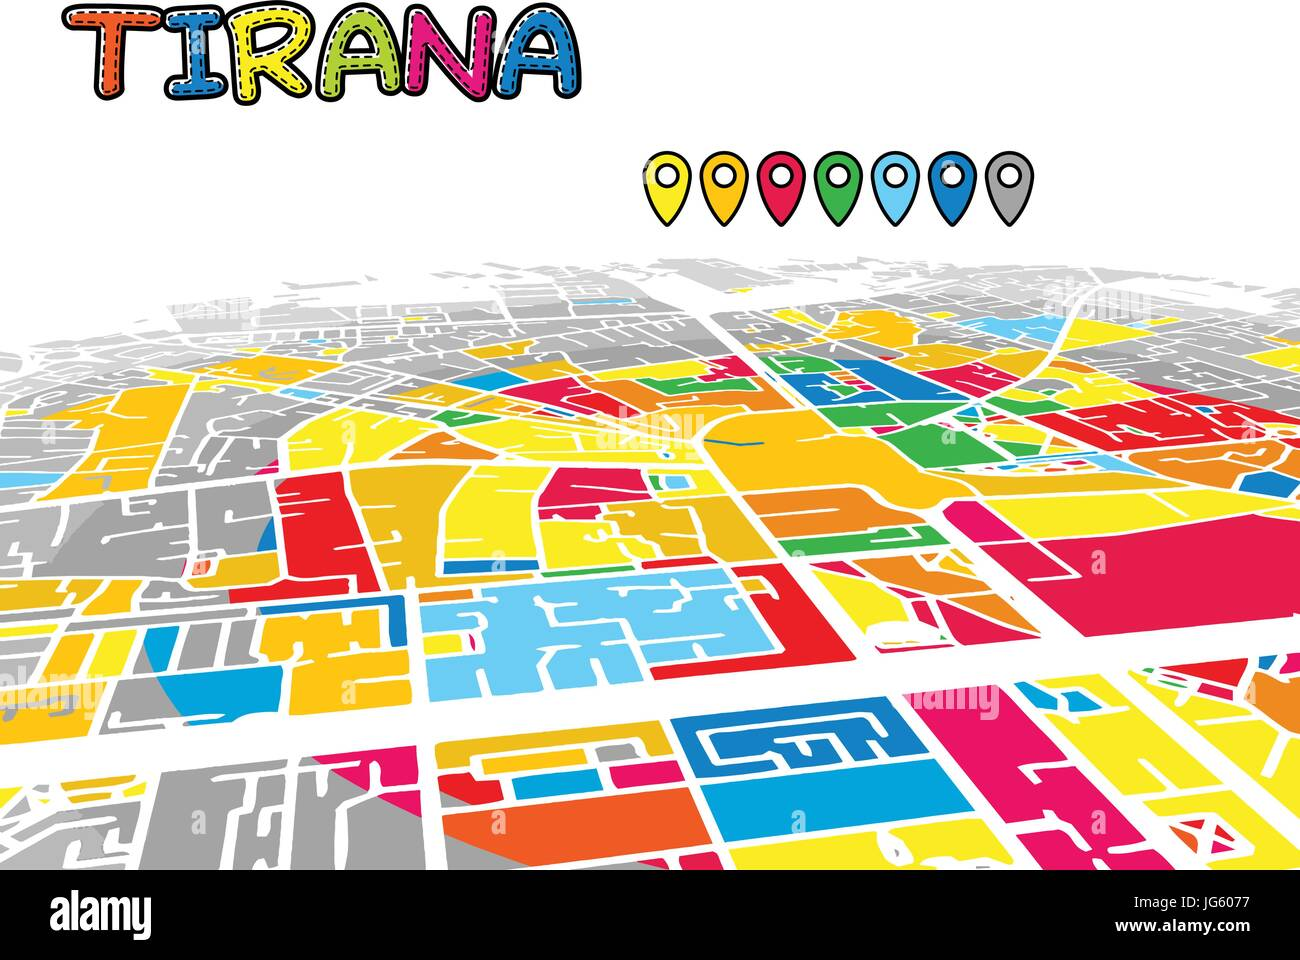 Tirana, Albania, Downtown 3D Vector Map of Famous Streets. Bright foreground full of colors. White Streets, Waterways - Stock Vector